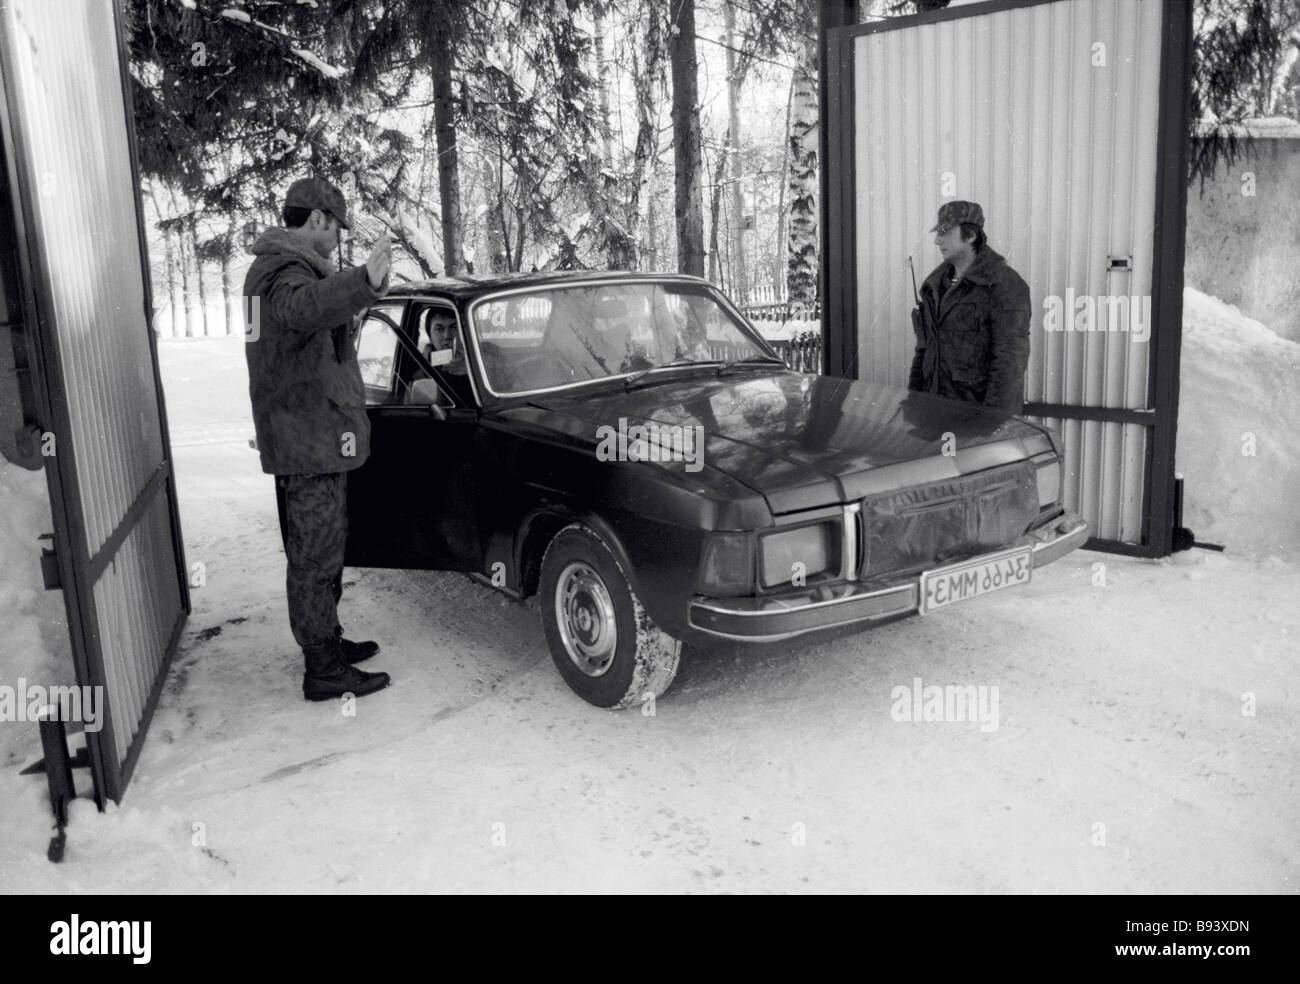 Former KGB employees are working as security personnel in a commercial company near Moscow - Stock Image